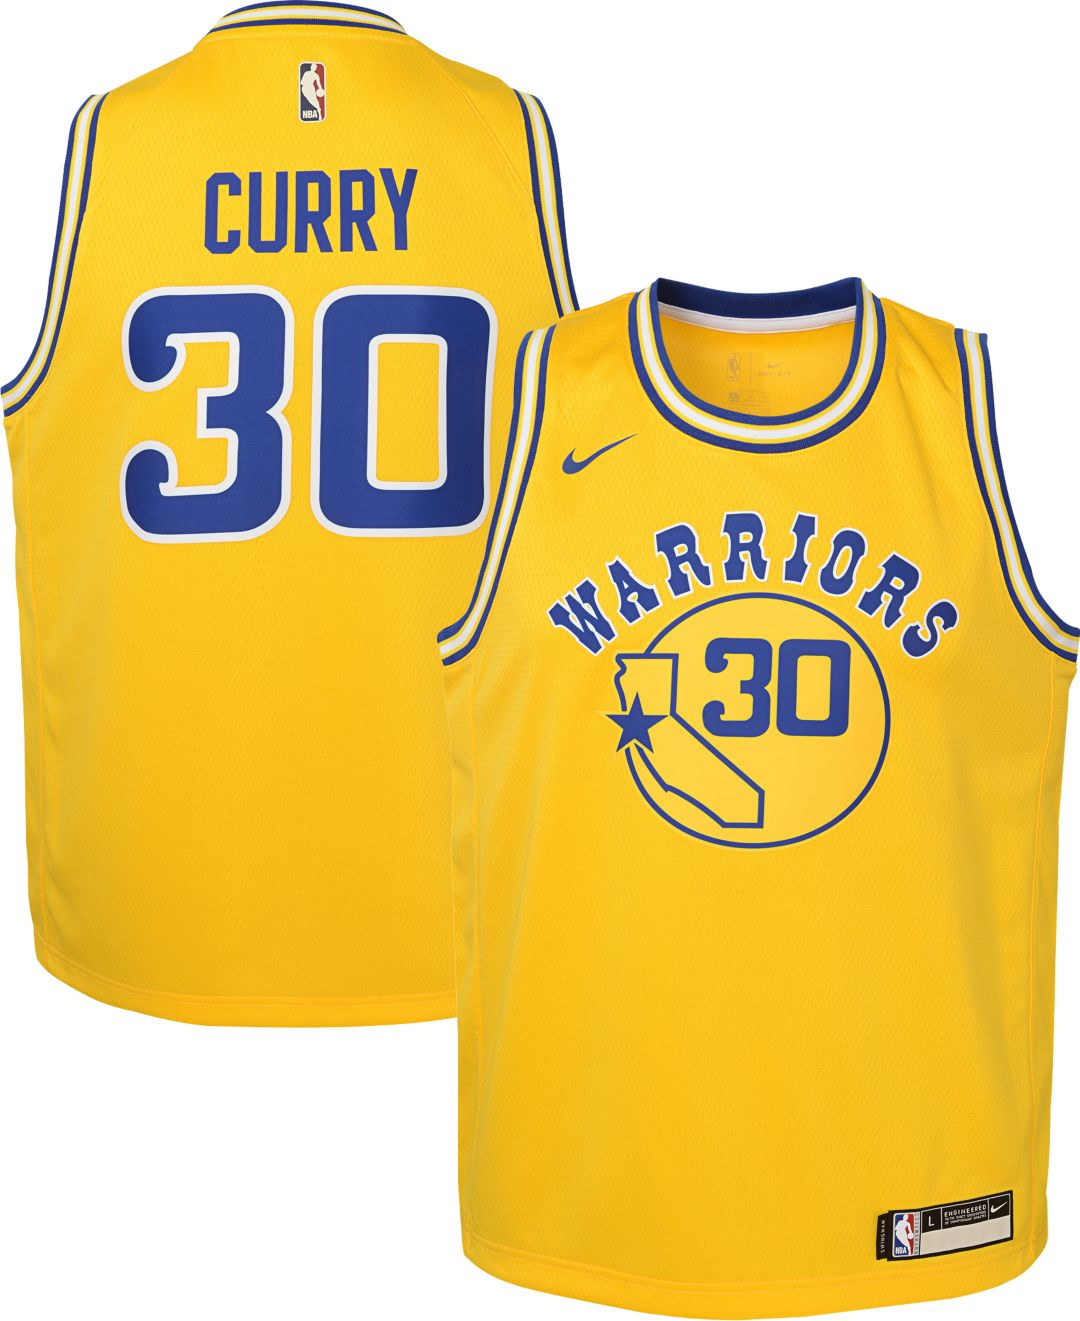 63edaab426d Nike Youth Golden State Warriors Steph Curry Dri-FIT Hardwood Classic  Swingman Jersey 1